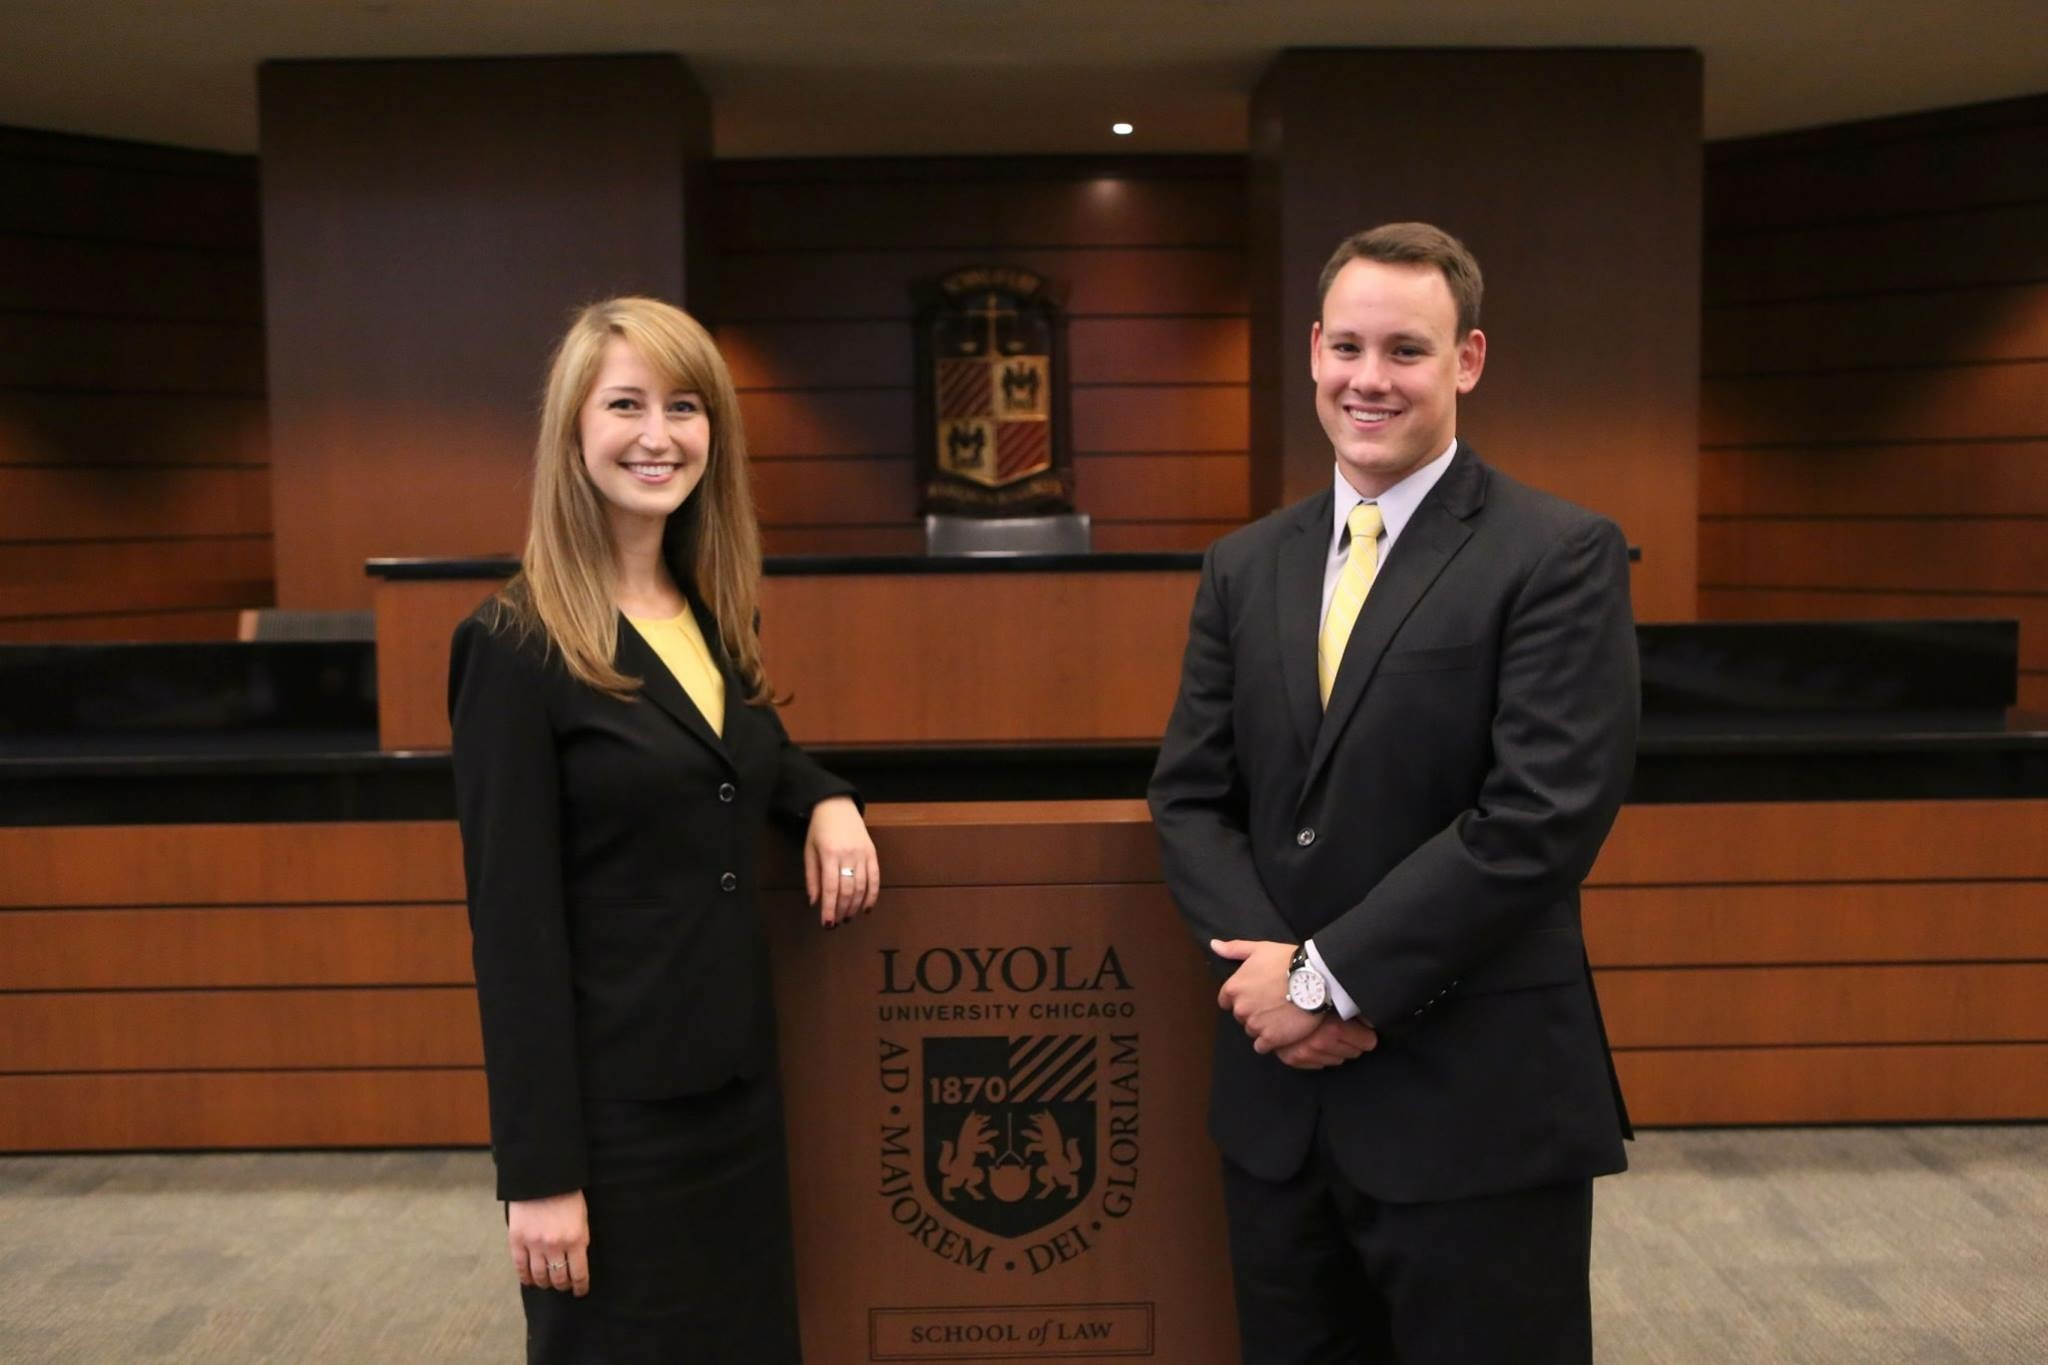 Joe and me for our moot team photo